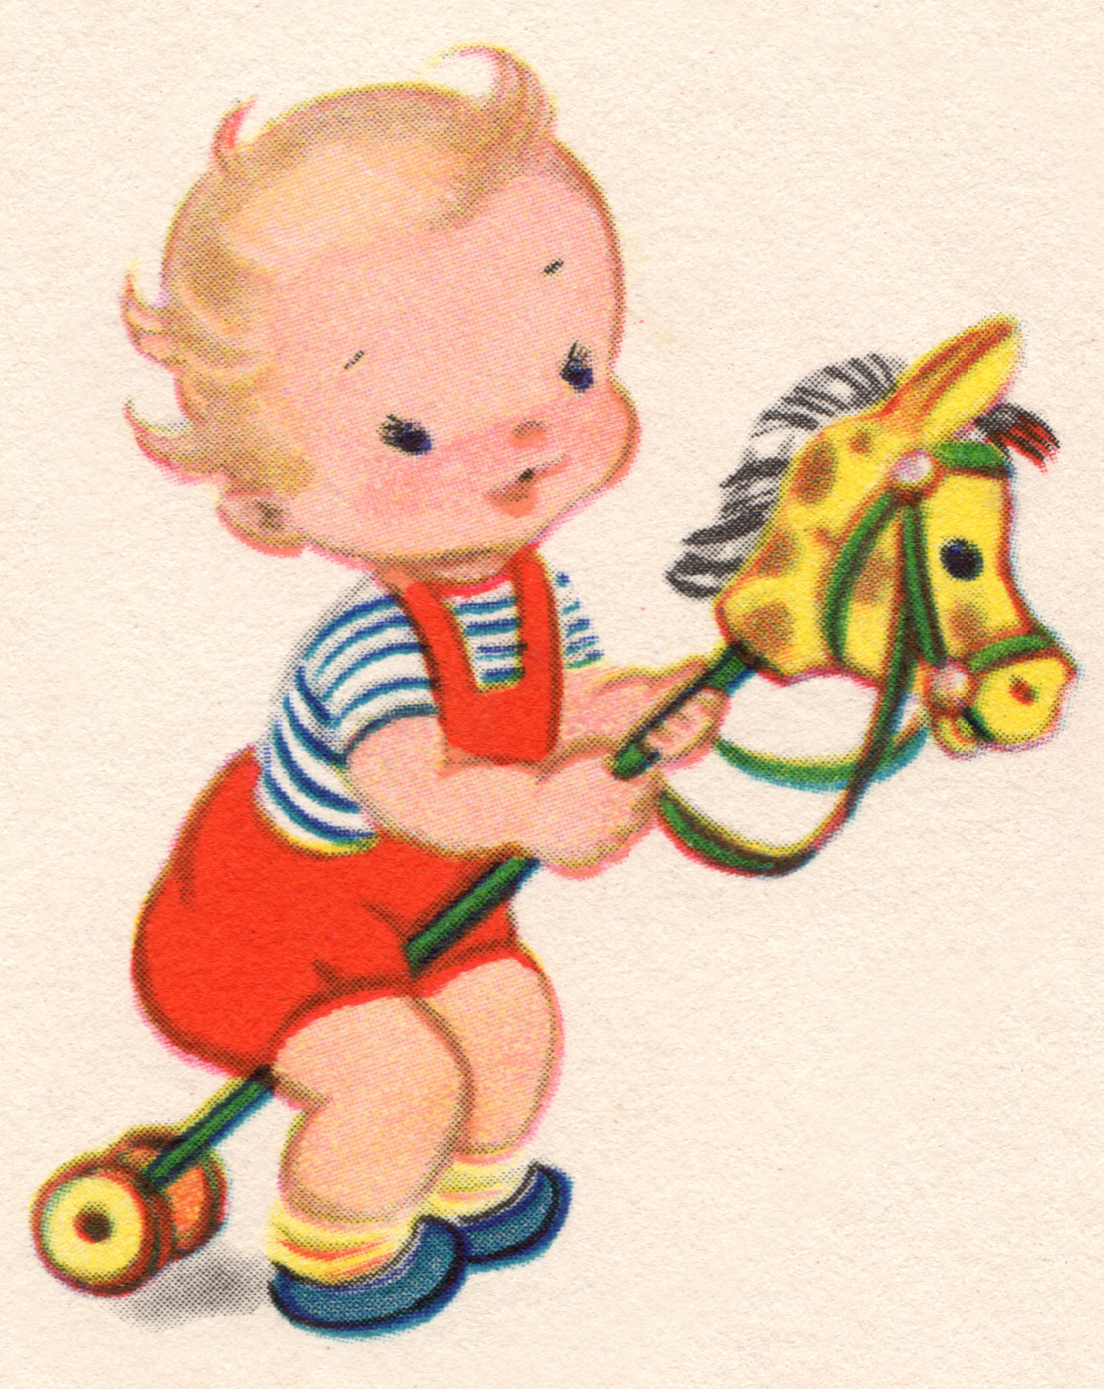 Vintage Clip Art Baby Boy Free Pretty Things For You